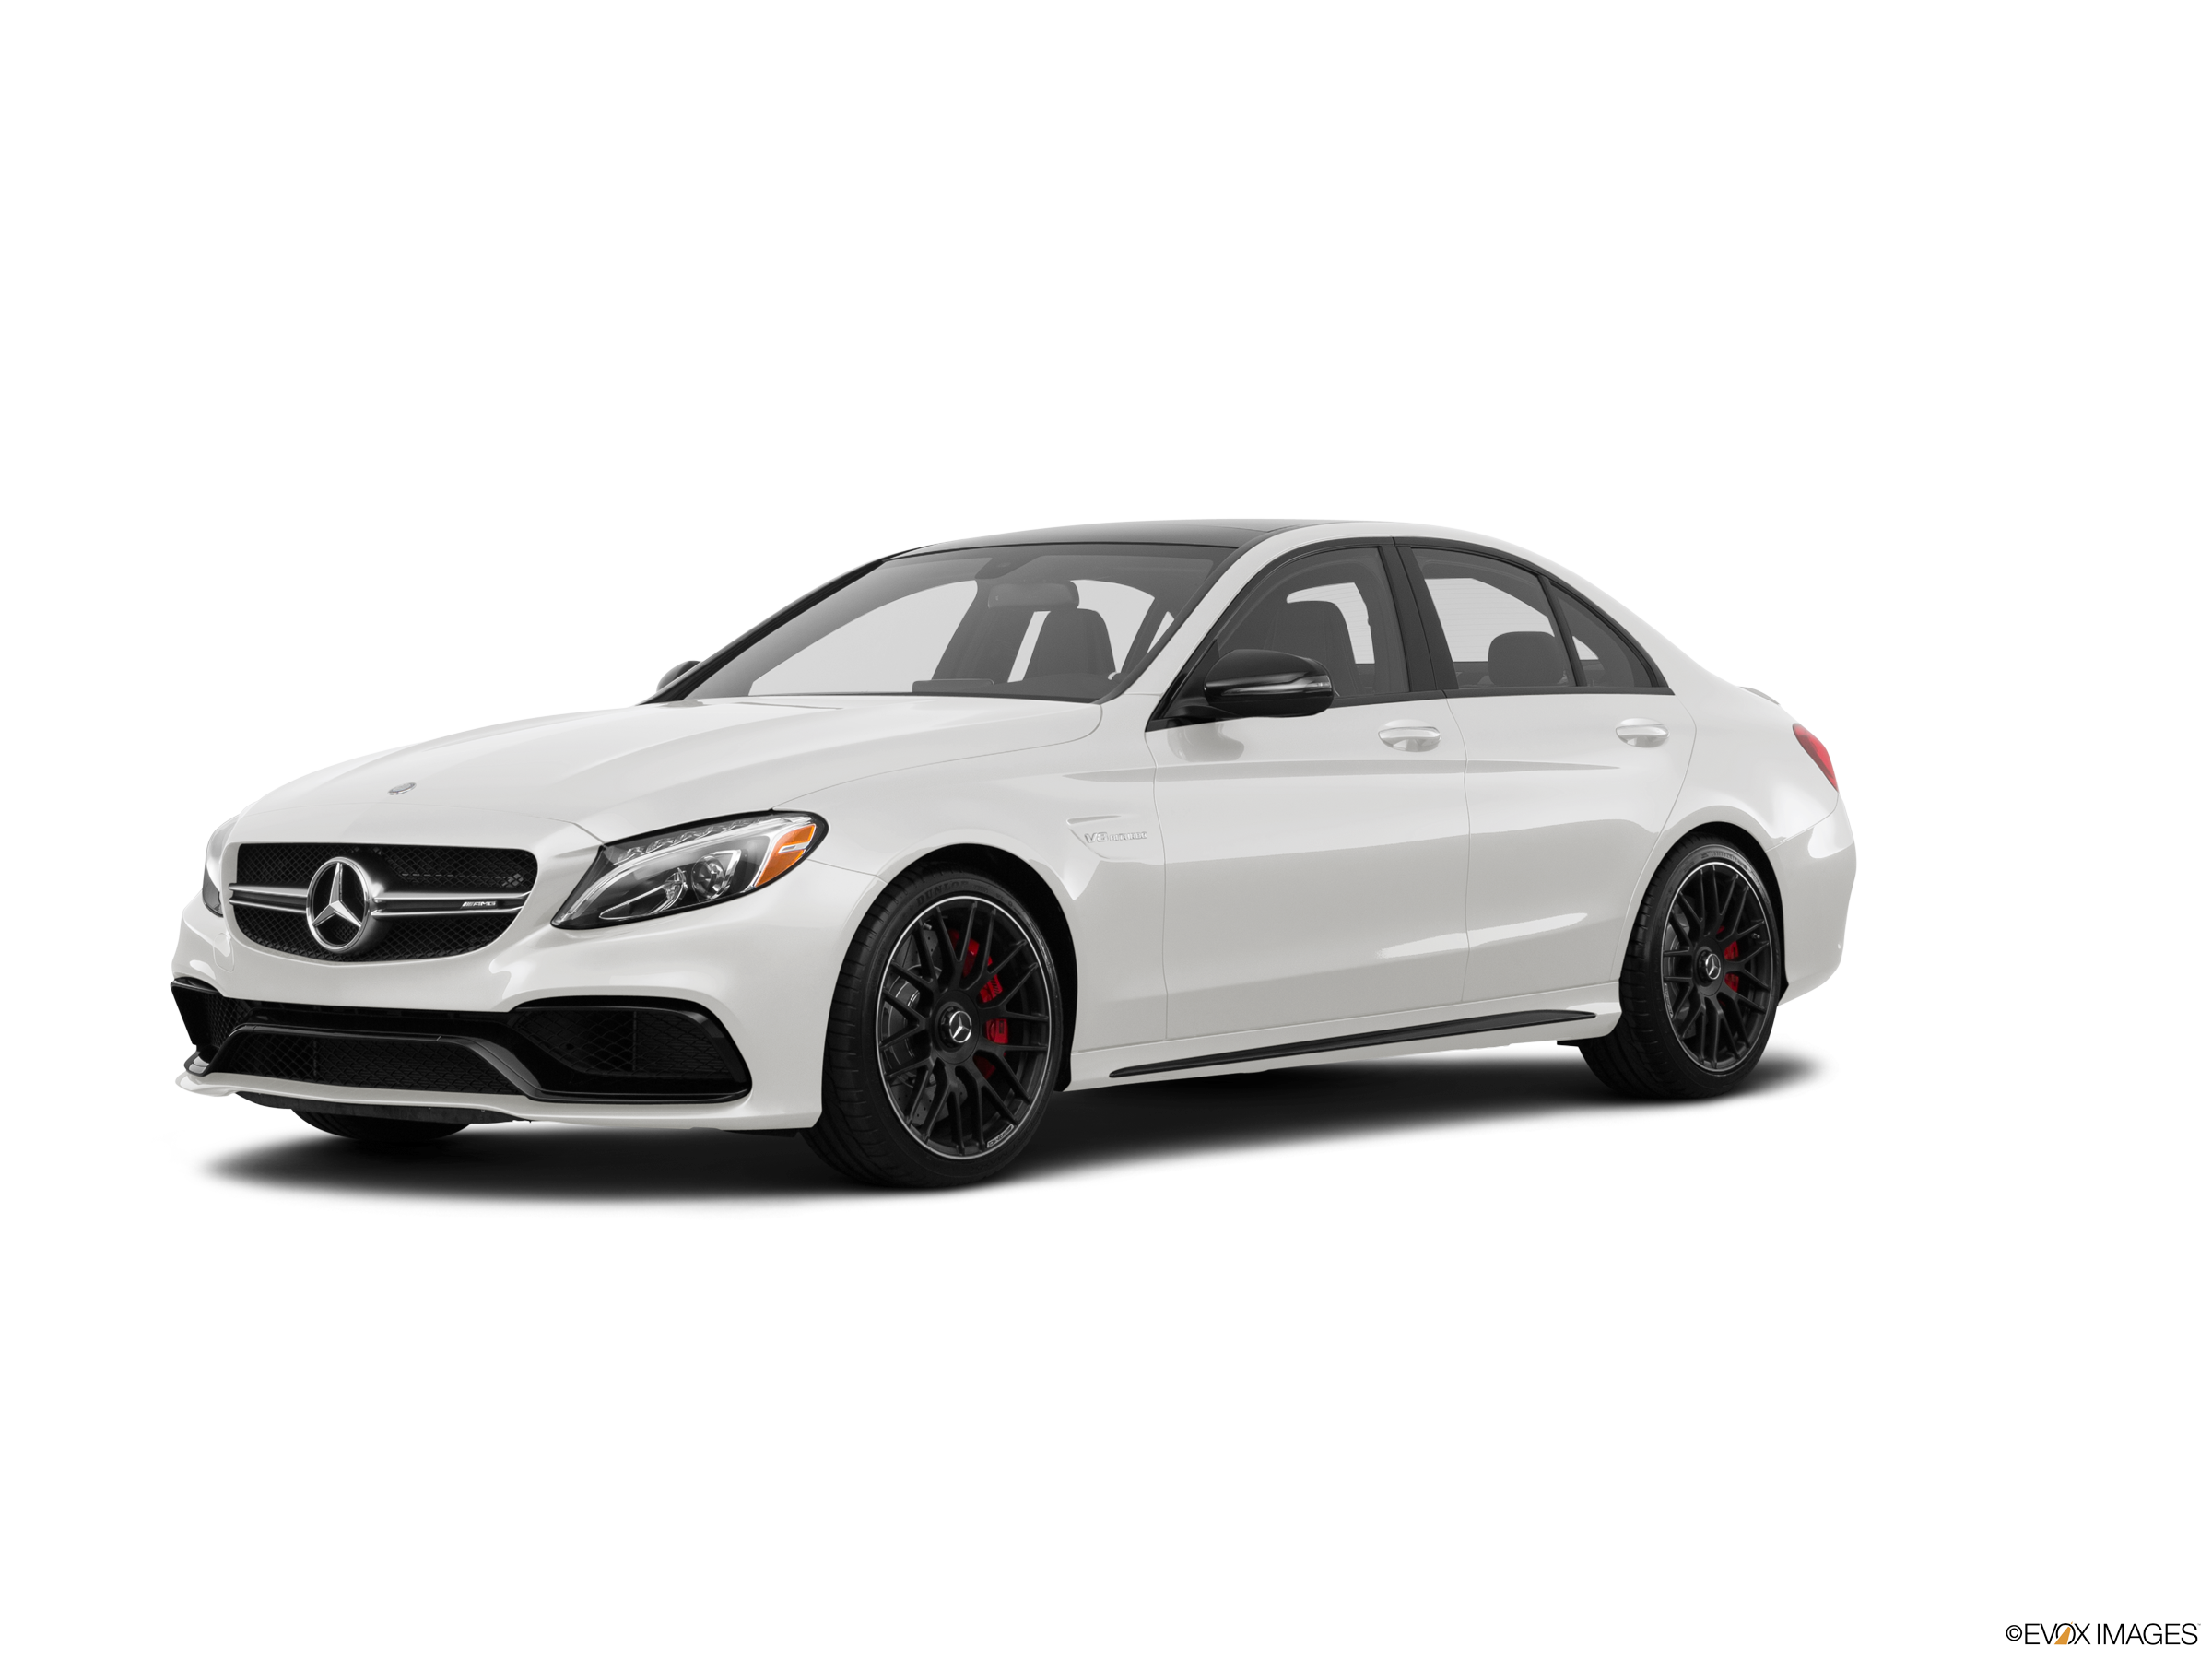 Top Expert Rated Luxury Vehicles of 2018 - 2018 Mercedes-Benz Mercedes-AMG C-Class